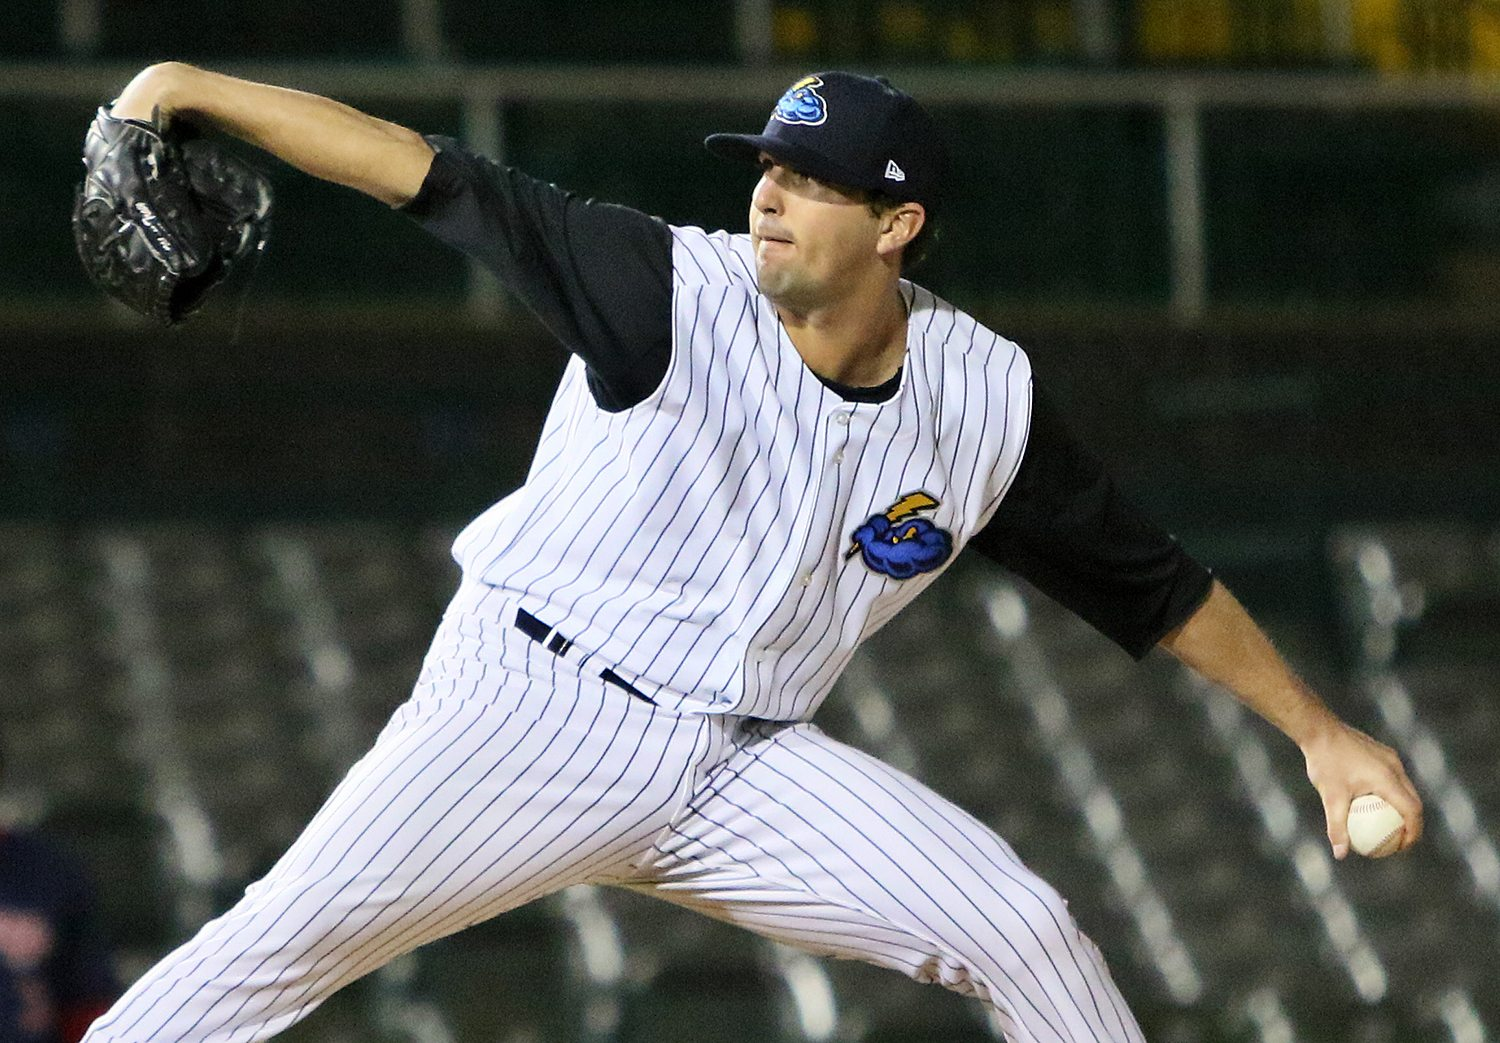 Trenton Thunder southpaw Matt Tracy fires the last pitch of the game against the Portland Sea Dogs at ARM & HAMMER Park in Trenton on Wednesday, April 13, 2016. Tracy got the win as the Thunder defeated the Sea Dogs 1-0.  Photo by Martin Griff